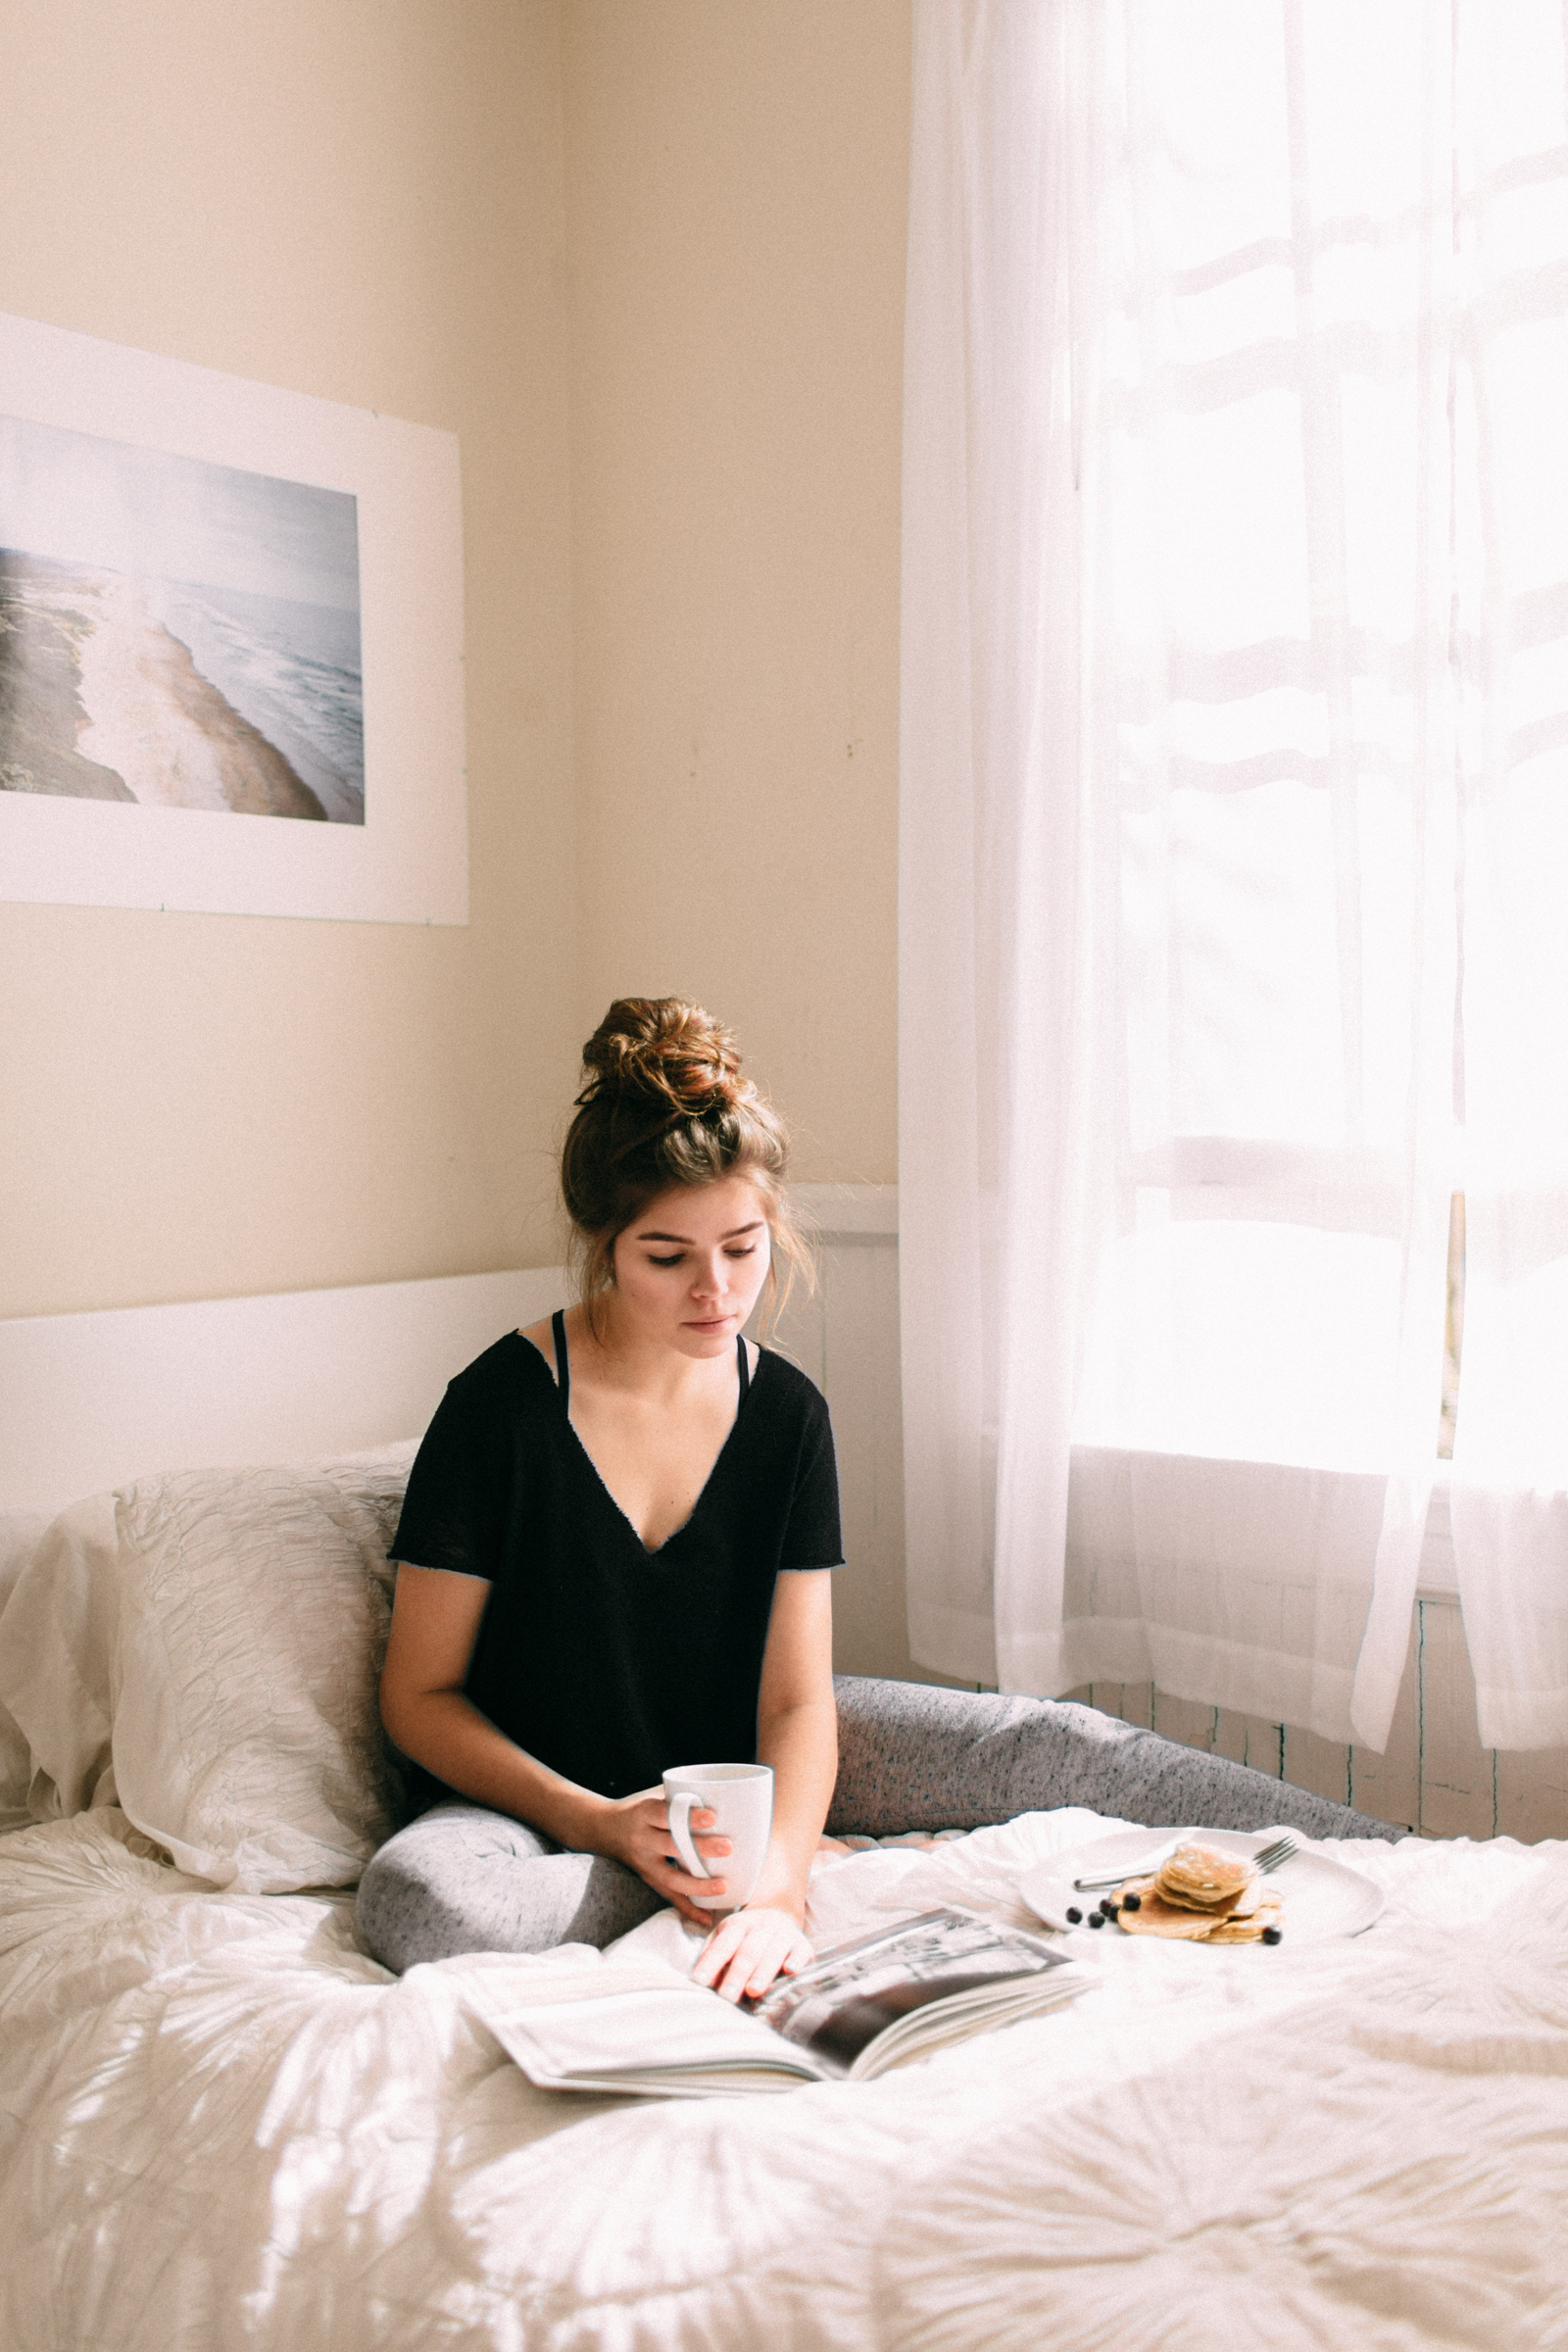 Breakfast-in-bed-9.jpg